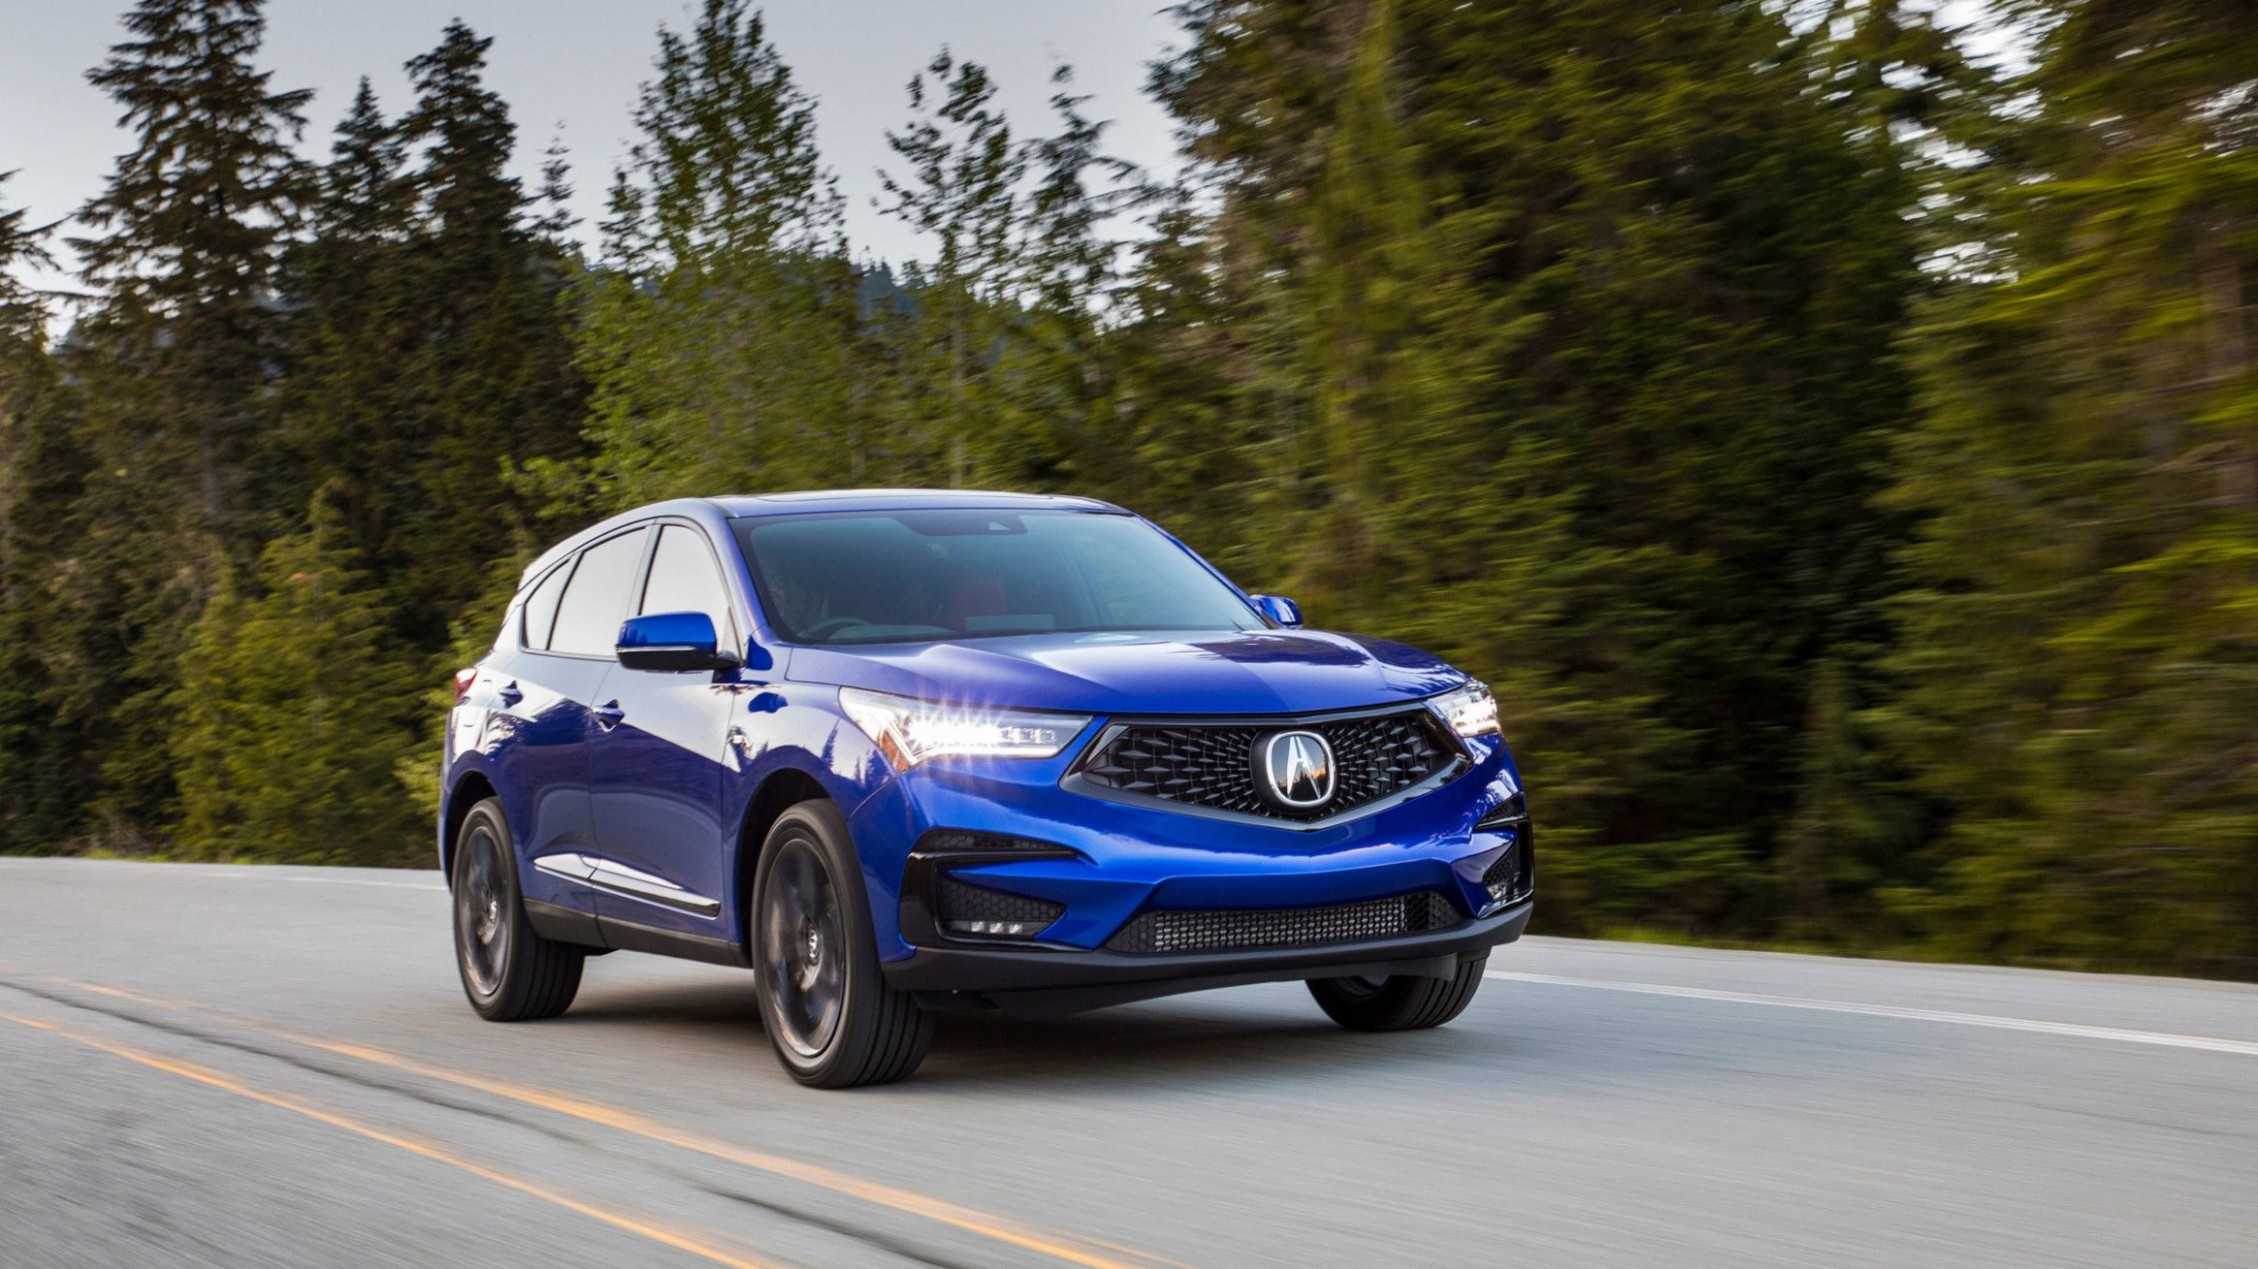 How Will 8 Acura Van Be In The (With images) | Acura rdx, Acura ..